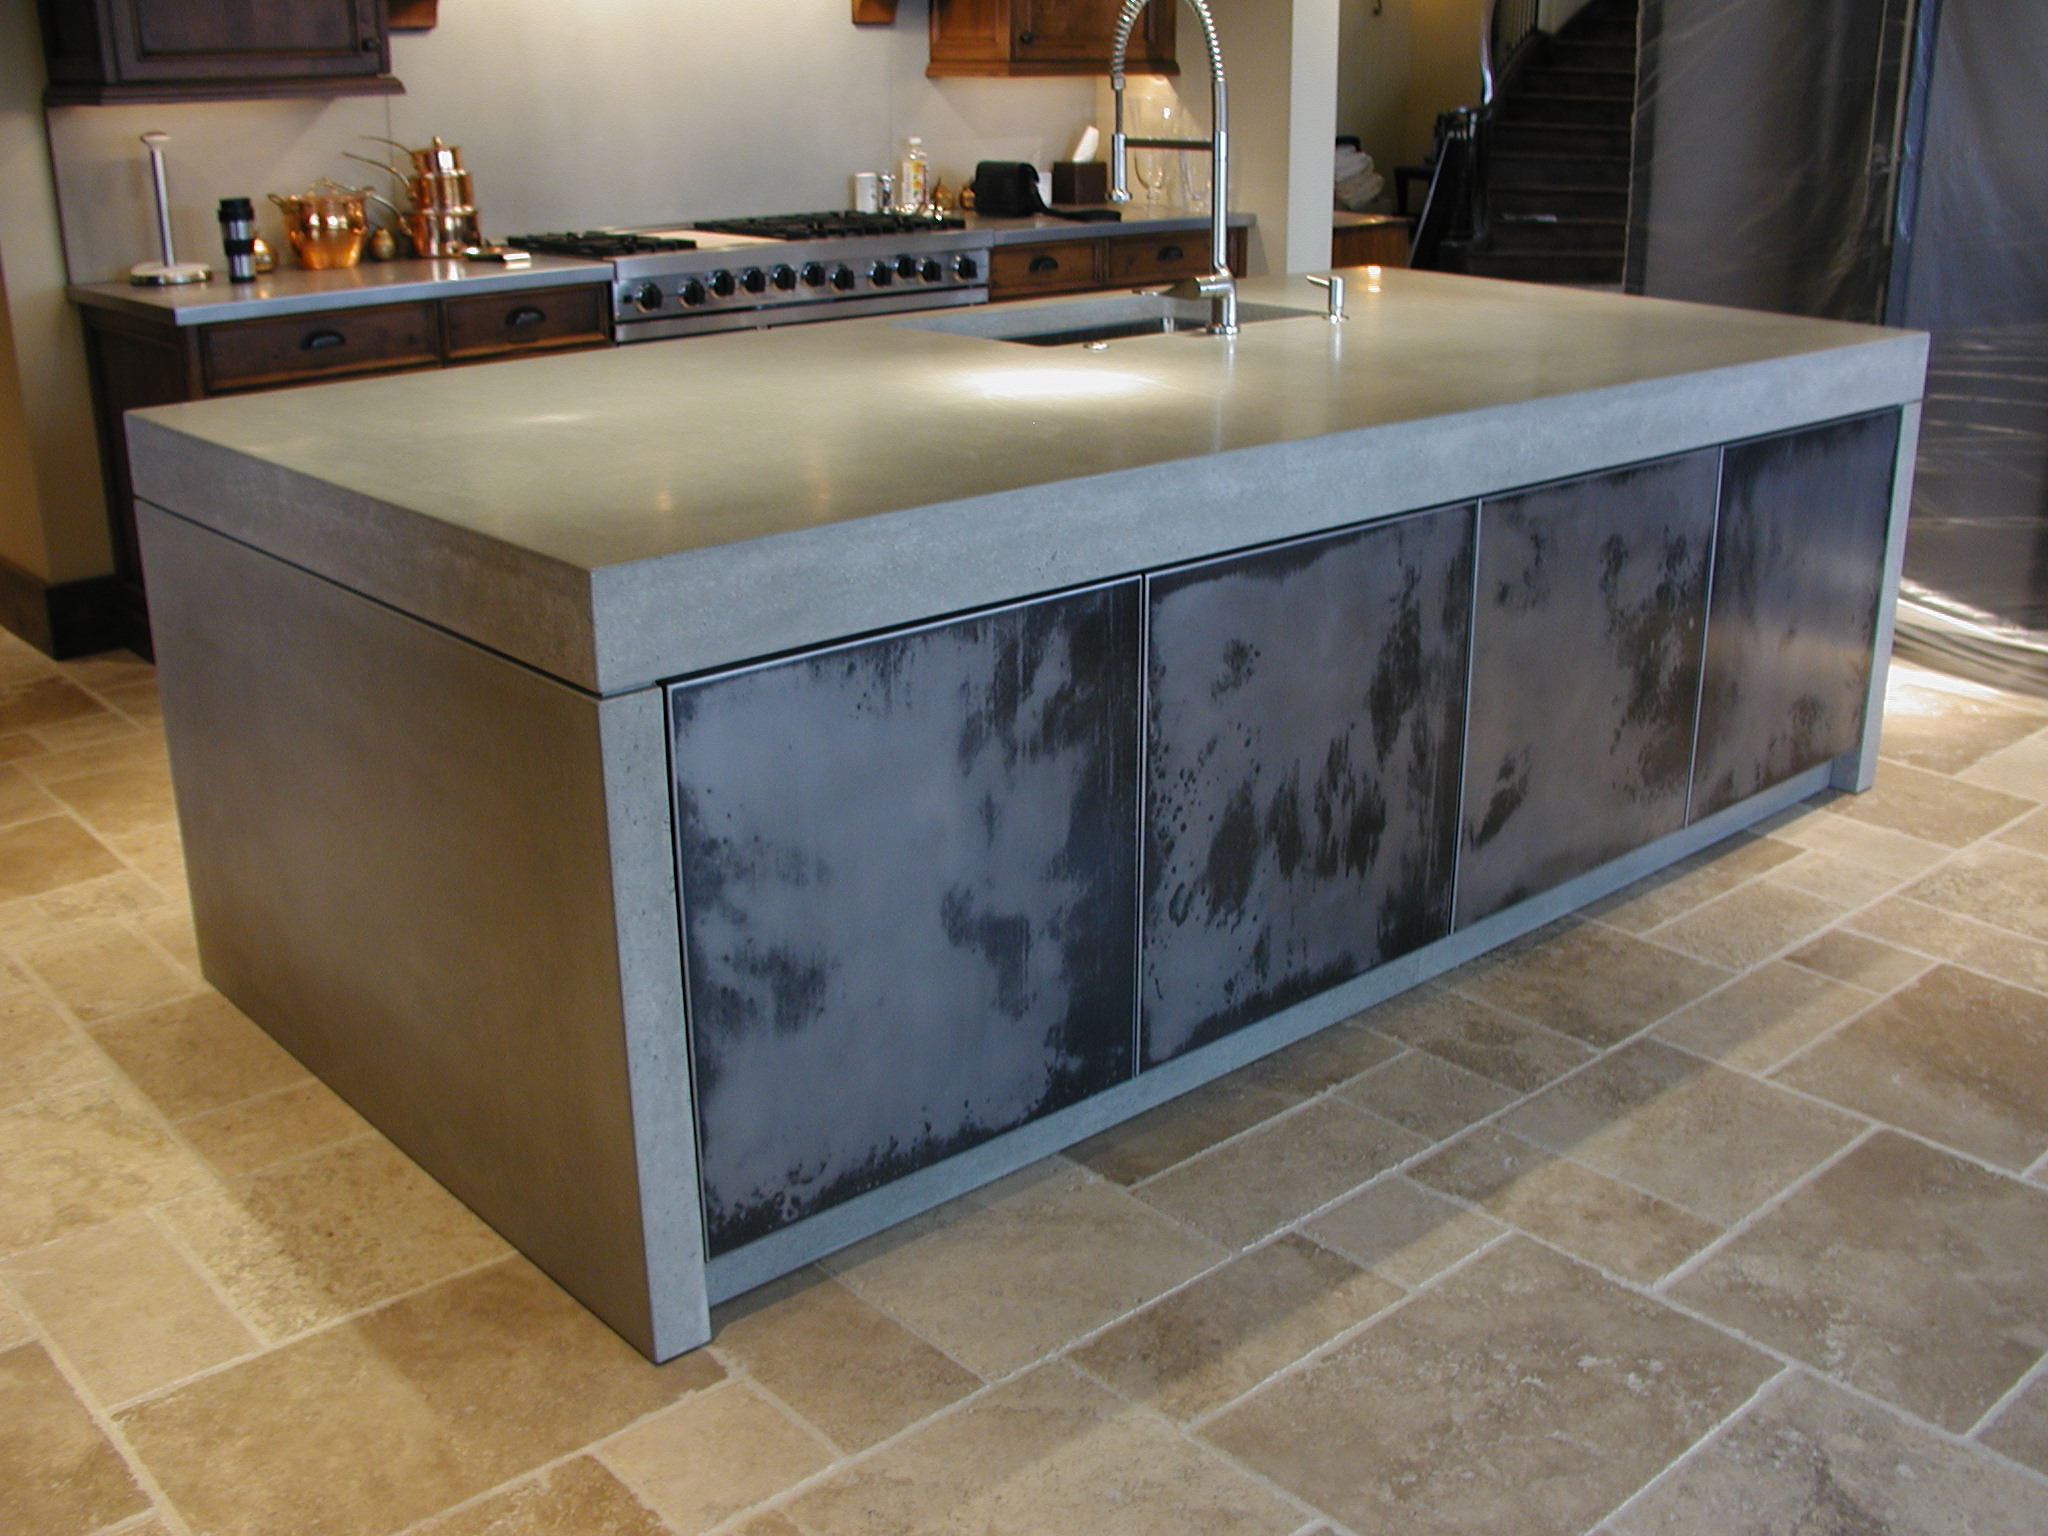 How much do concrete countertops cost?